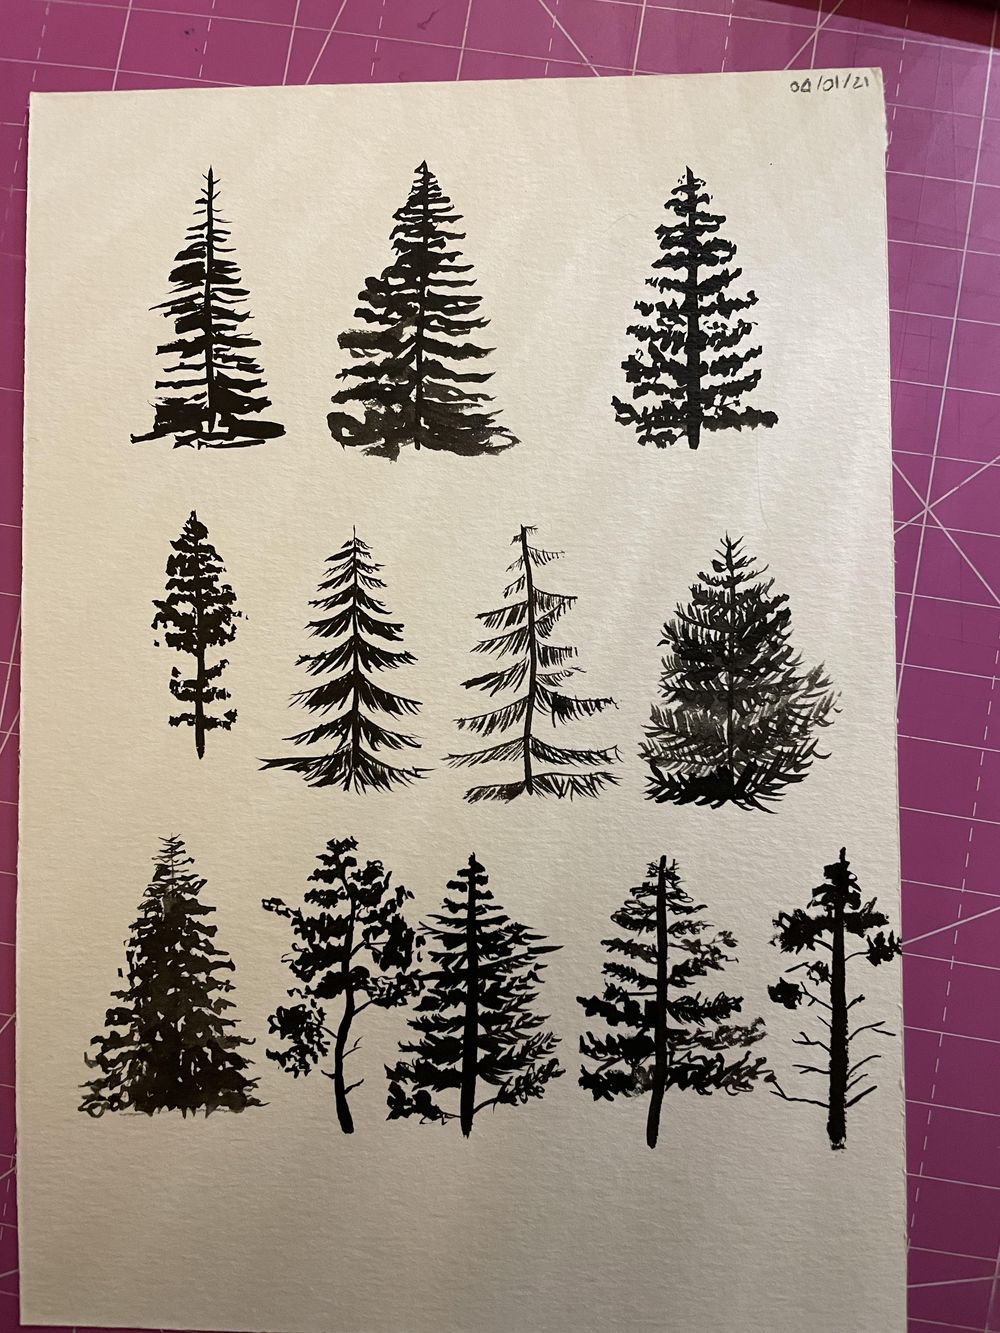 Pine trees class - image 1 - student project